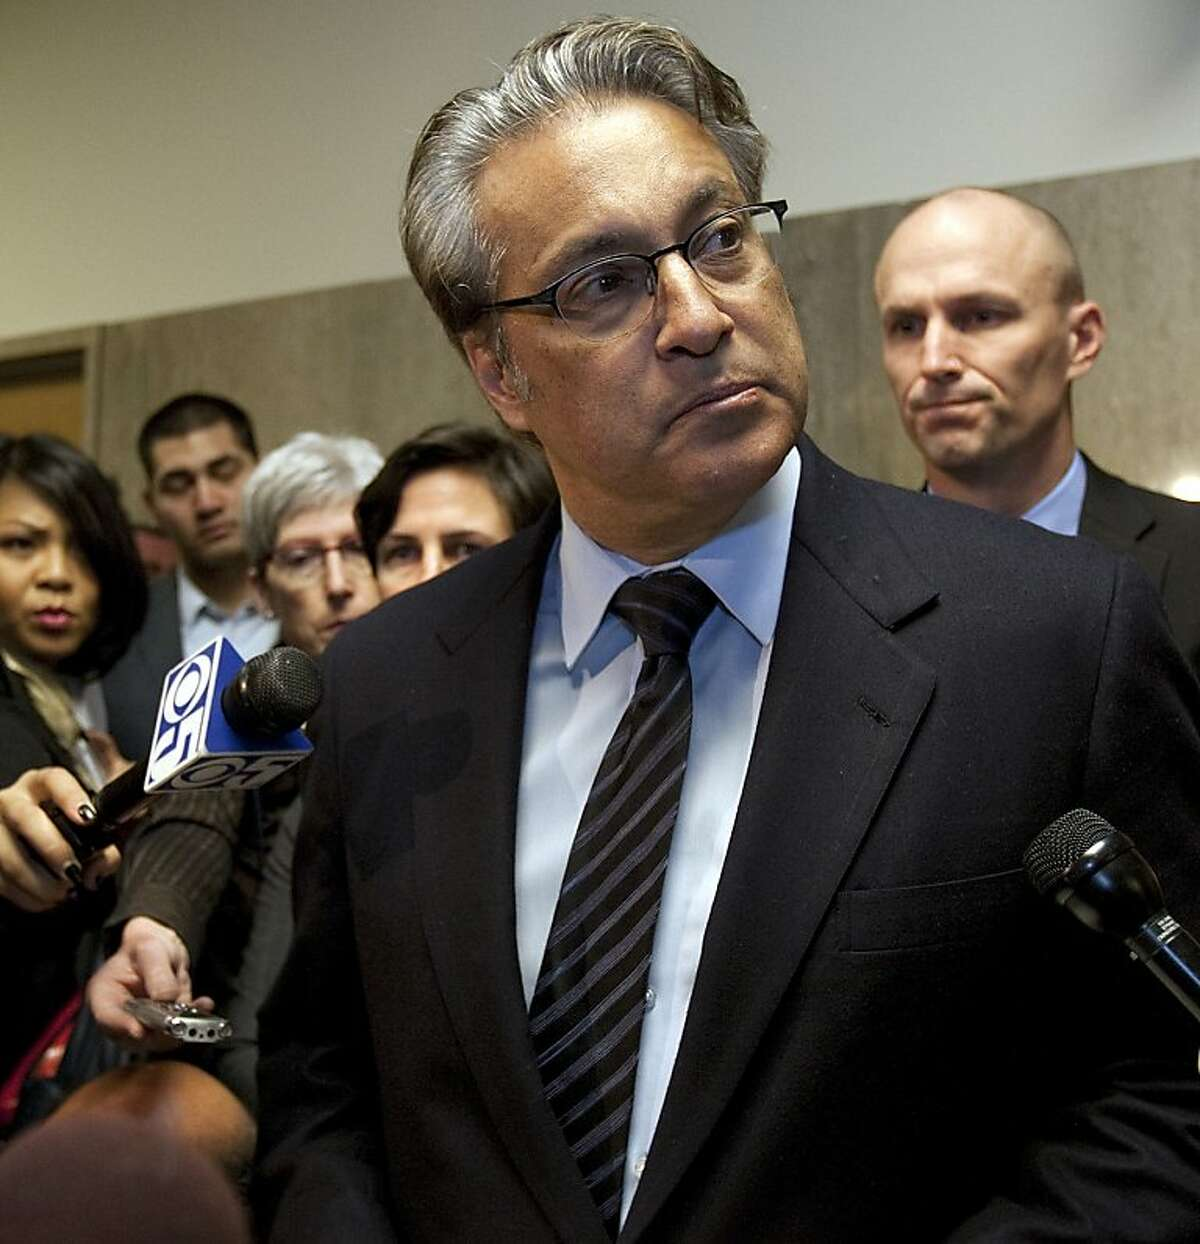 Embattled San Francisco Sheriff Ross Mirkarimi is greeted by a throng of media outside the court room at the San Francisco Hall of Justice after being sentenced to 1 day on jail, 100 hours of community service, 52 weeks of domestic violence training, court fees and parenting classes since a New year's Eve argument in which he grabbed and bruised his wife, Venezuelan telenova star Eliana Lopez. Mirkarimi said he is sorry about the pain he caused his family and the department. (Gina Ferazzi/Los Angeles Times/MCT)